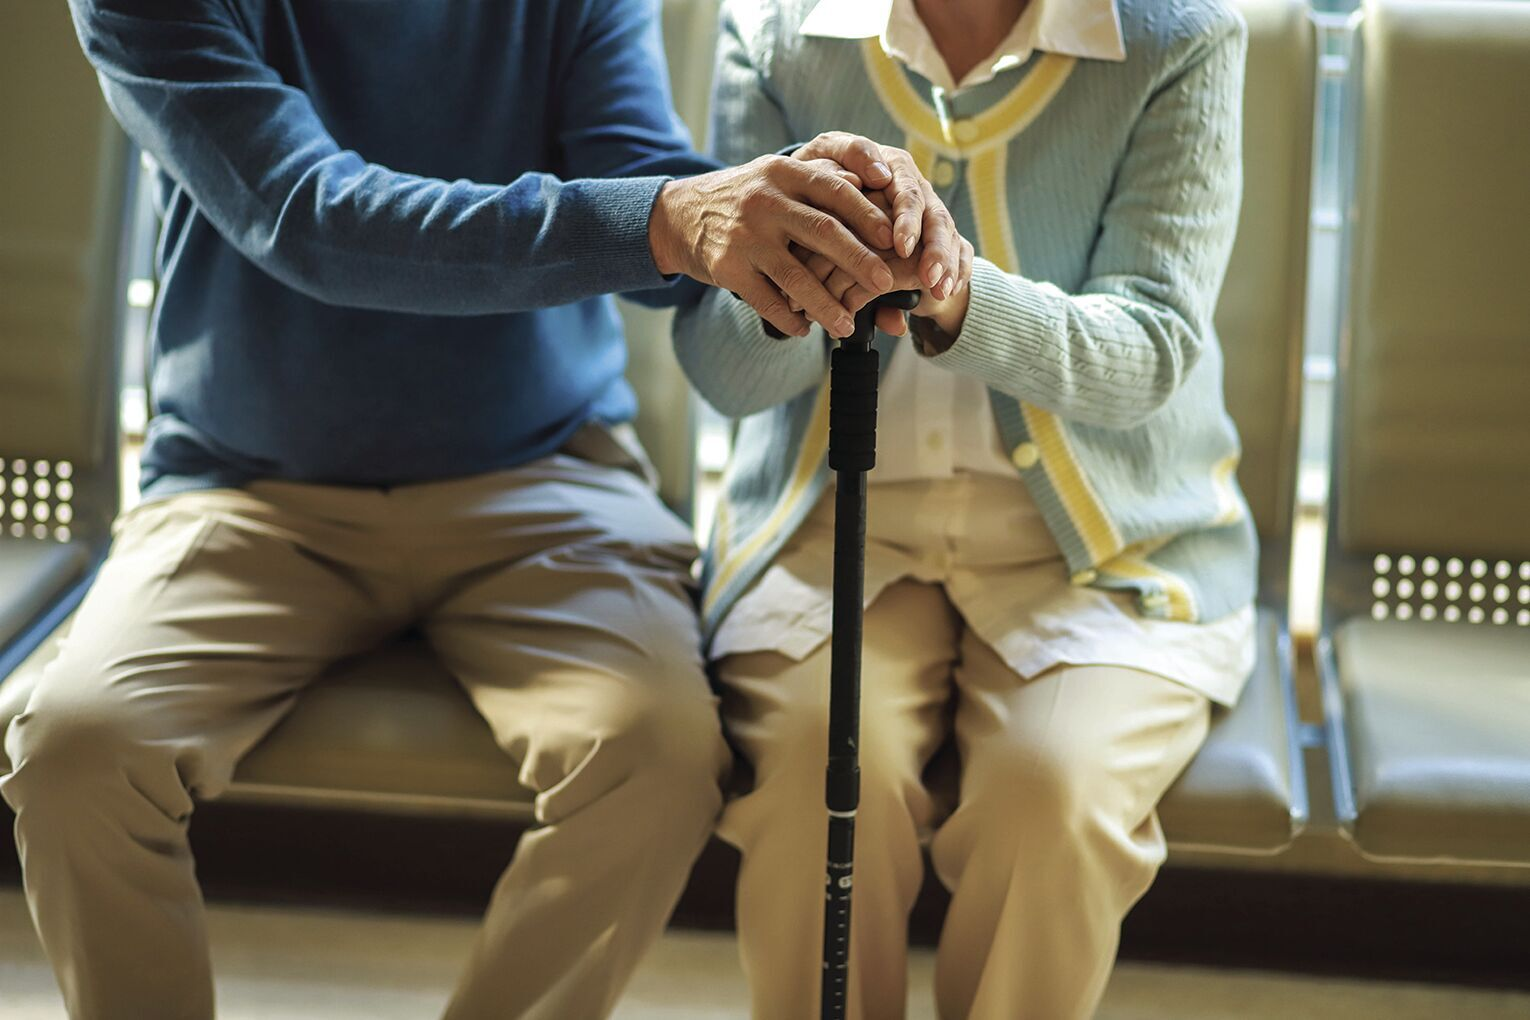 Alabama senior centers given the clear to open